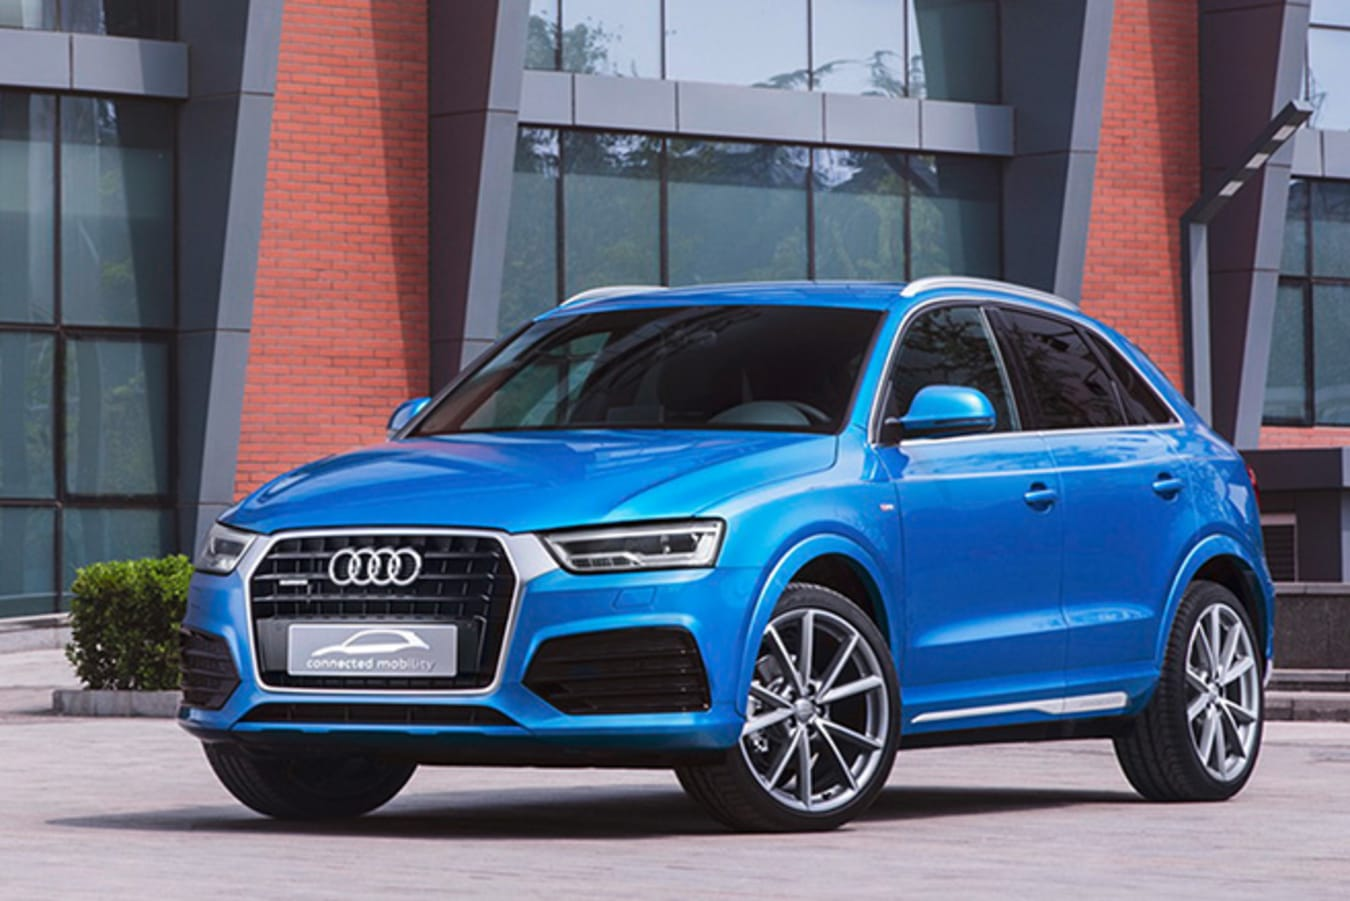 Audi Q3 connected mobility